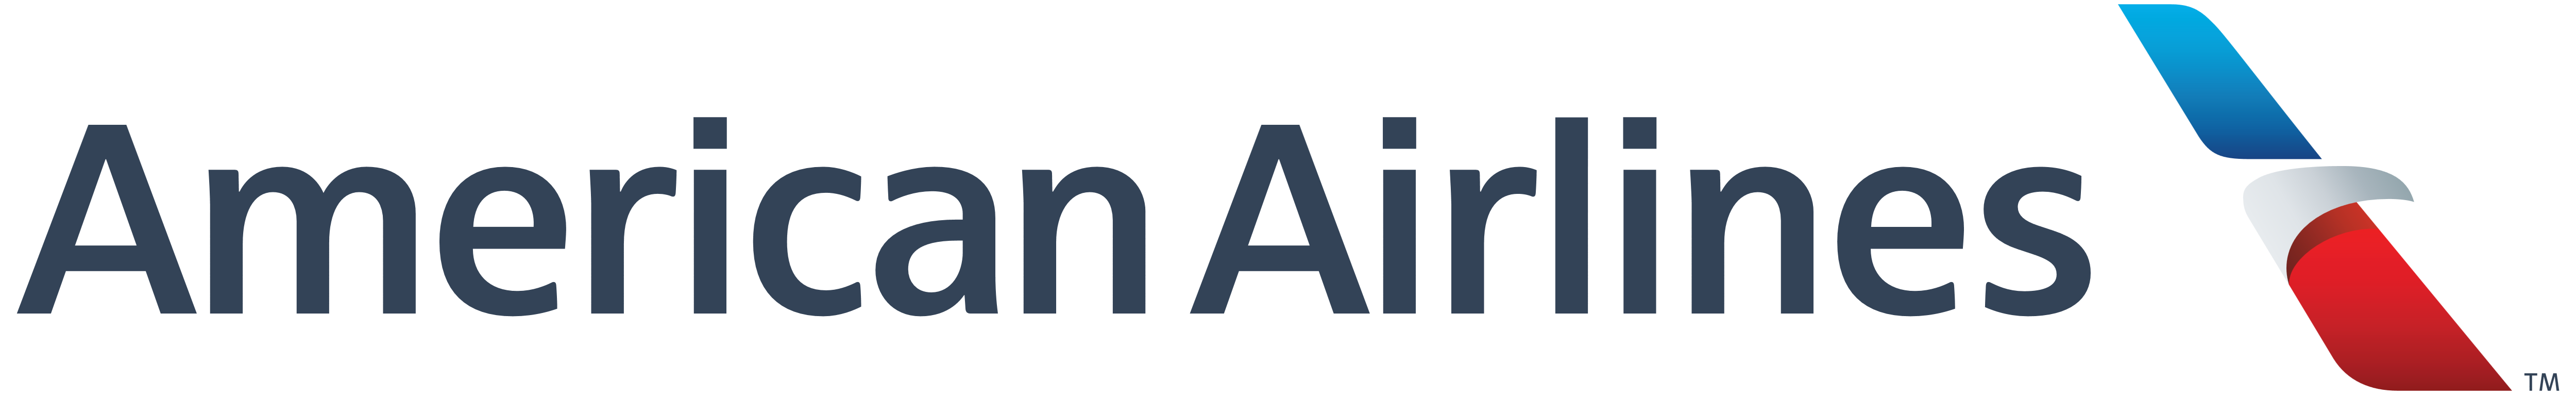 //www.texasstatesociety.org/wp-content/uploads/2018/05/American_Airlines_logo.png